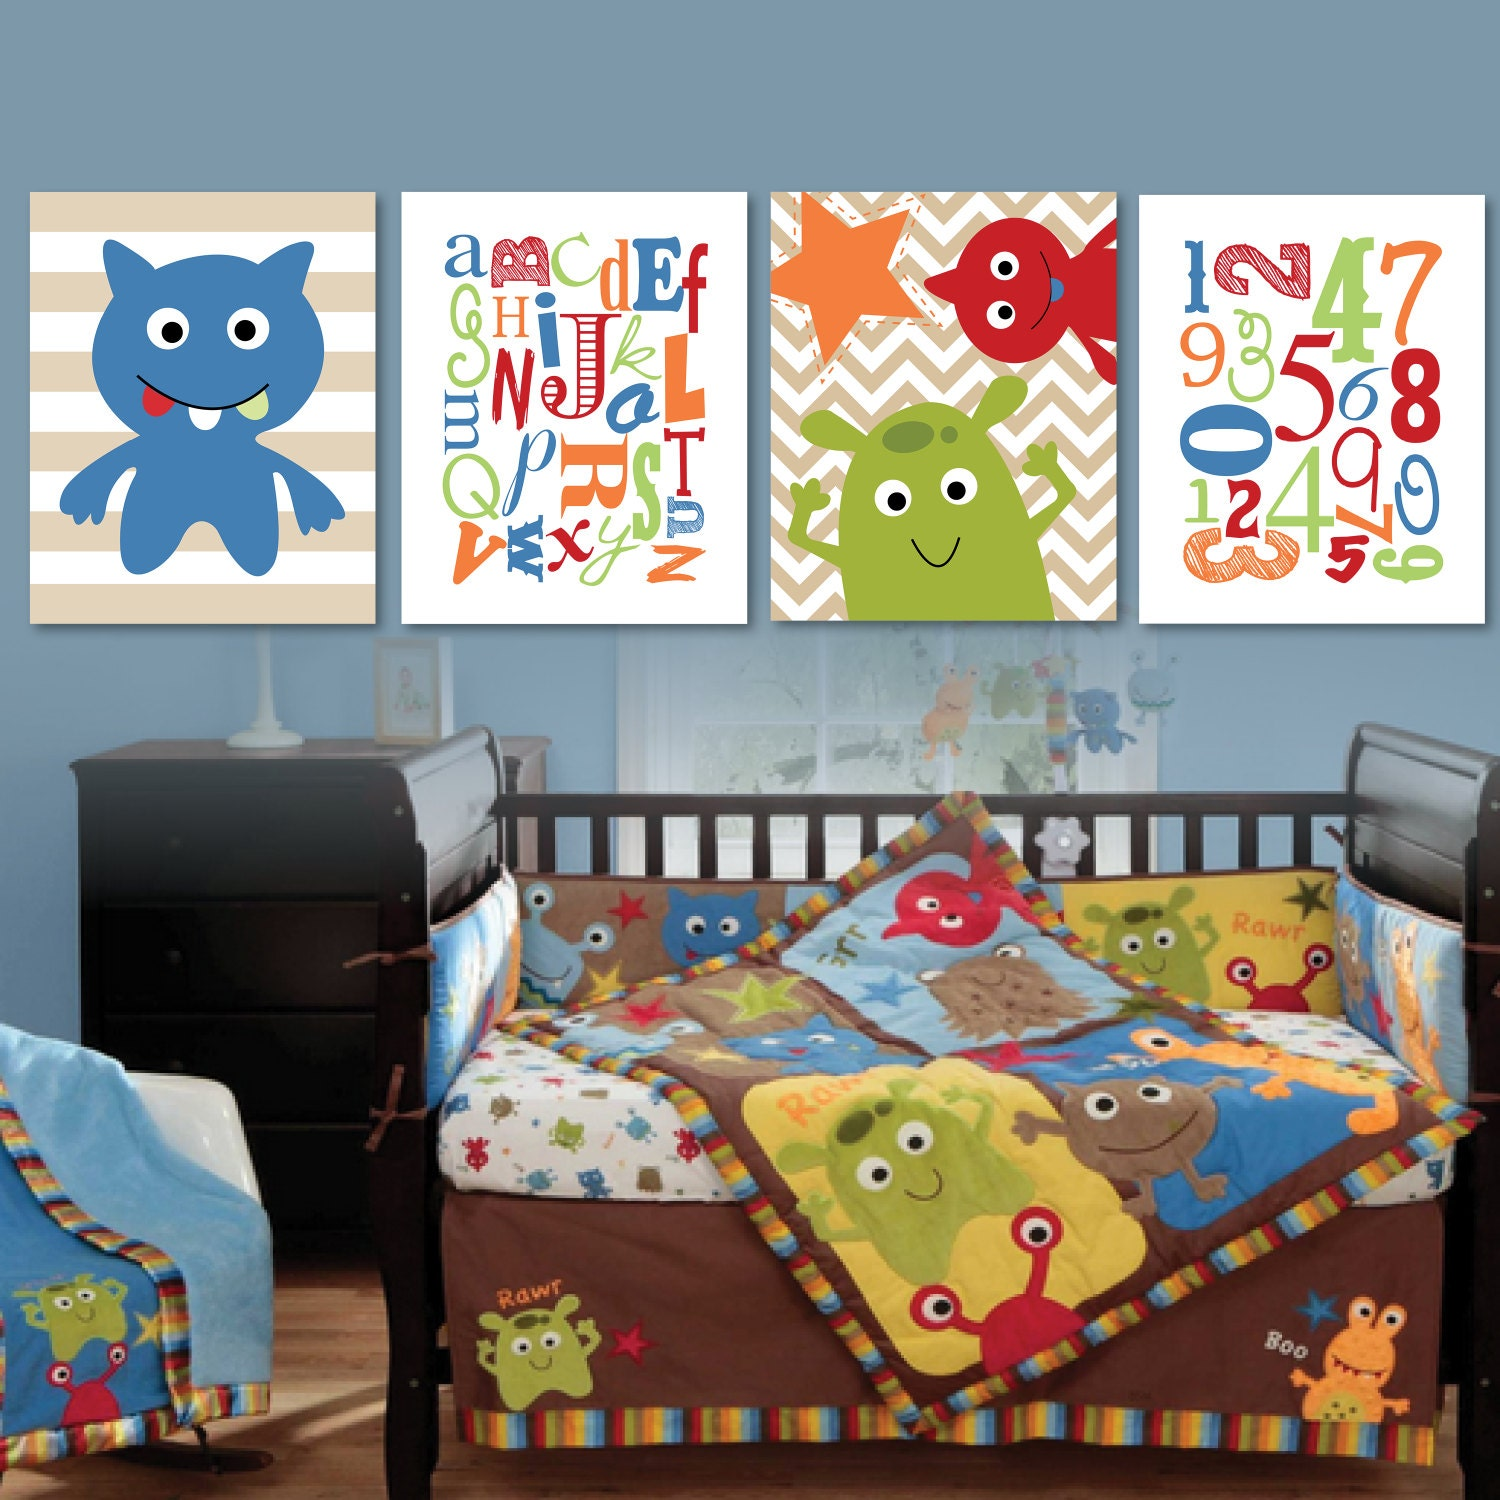 You searched for: monster nursery! Etsy is the home to thousands of handmade, vintage, and one-of-a-kind products and gifts related to your search. Baby Mobile Nursery Decor Monster Mobile Cute Monsters Baby Boy Nursery Decor, Baby Shower Gift Baby Boy Gift. Where the Wild Things Are AContinualLullaby. 5 out of 5 stars () $